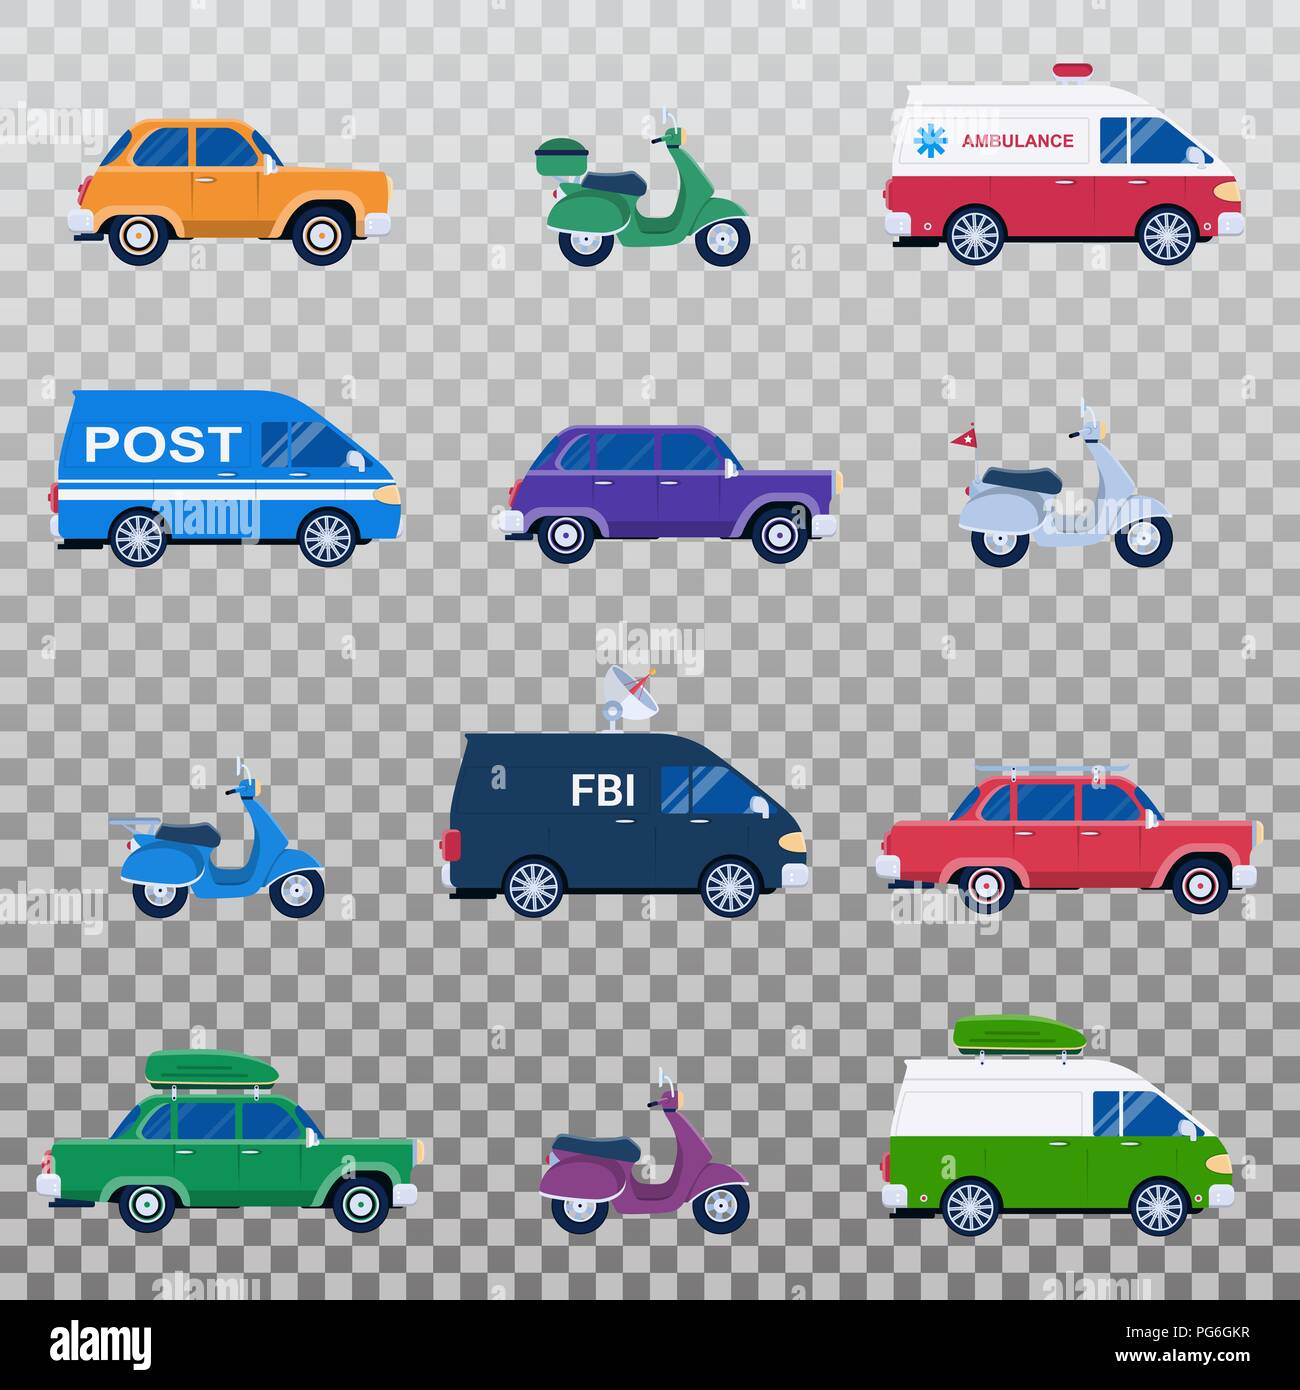 Isolated collection of different cars like ambulance and post minivan, fbi automobile and classic family sedan, motorcycles or gas minibikes assortment for traveling and vacation, eps 10 - Stock Image